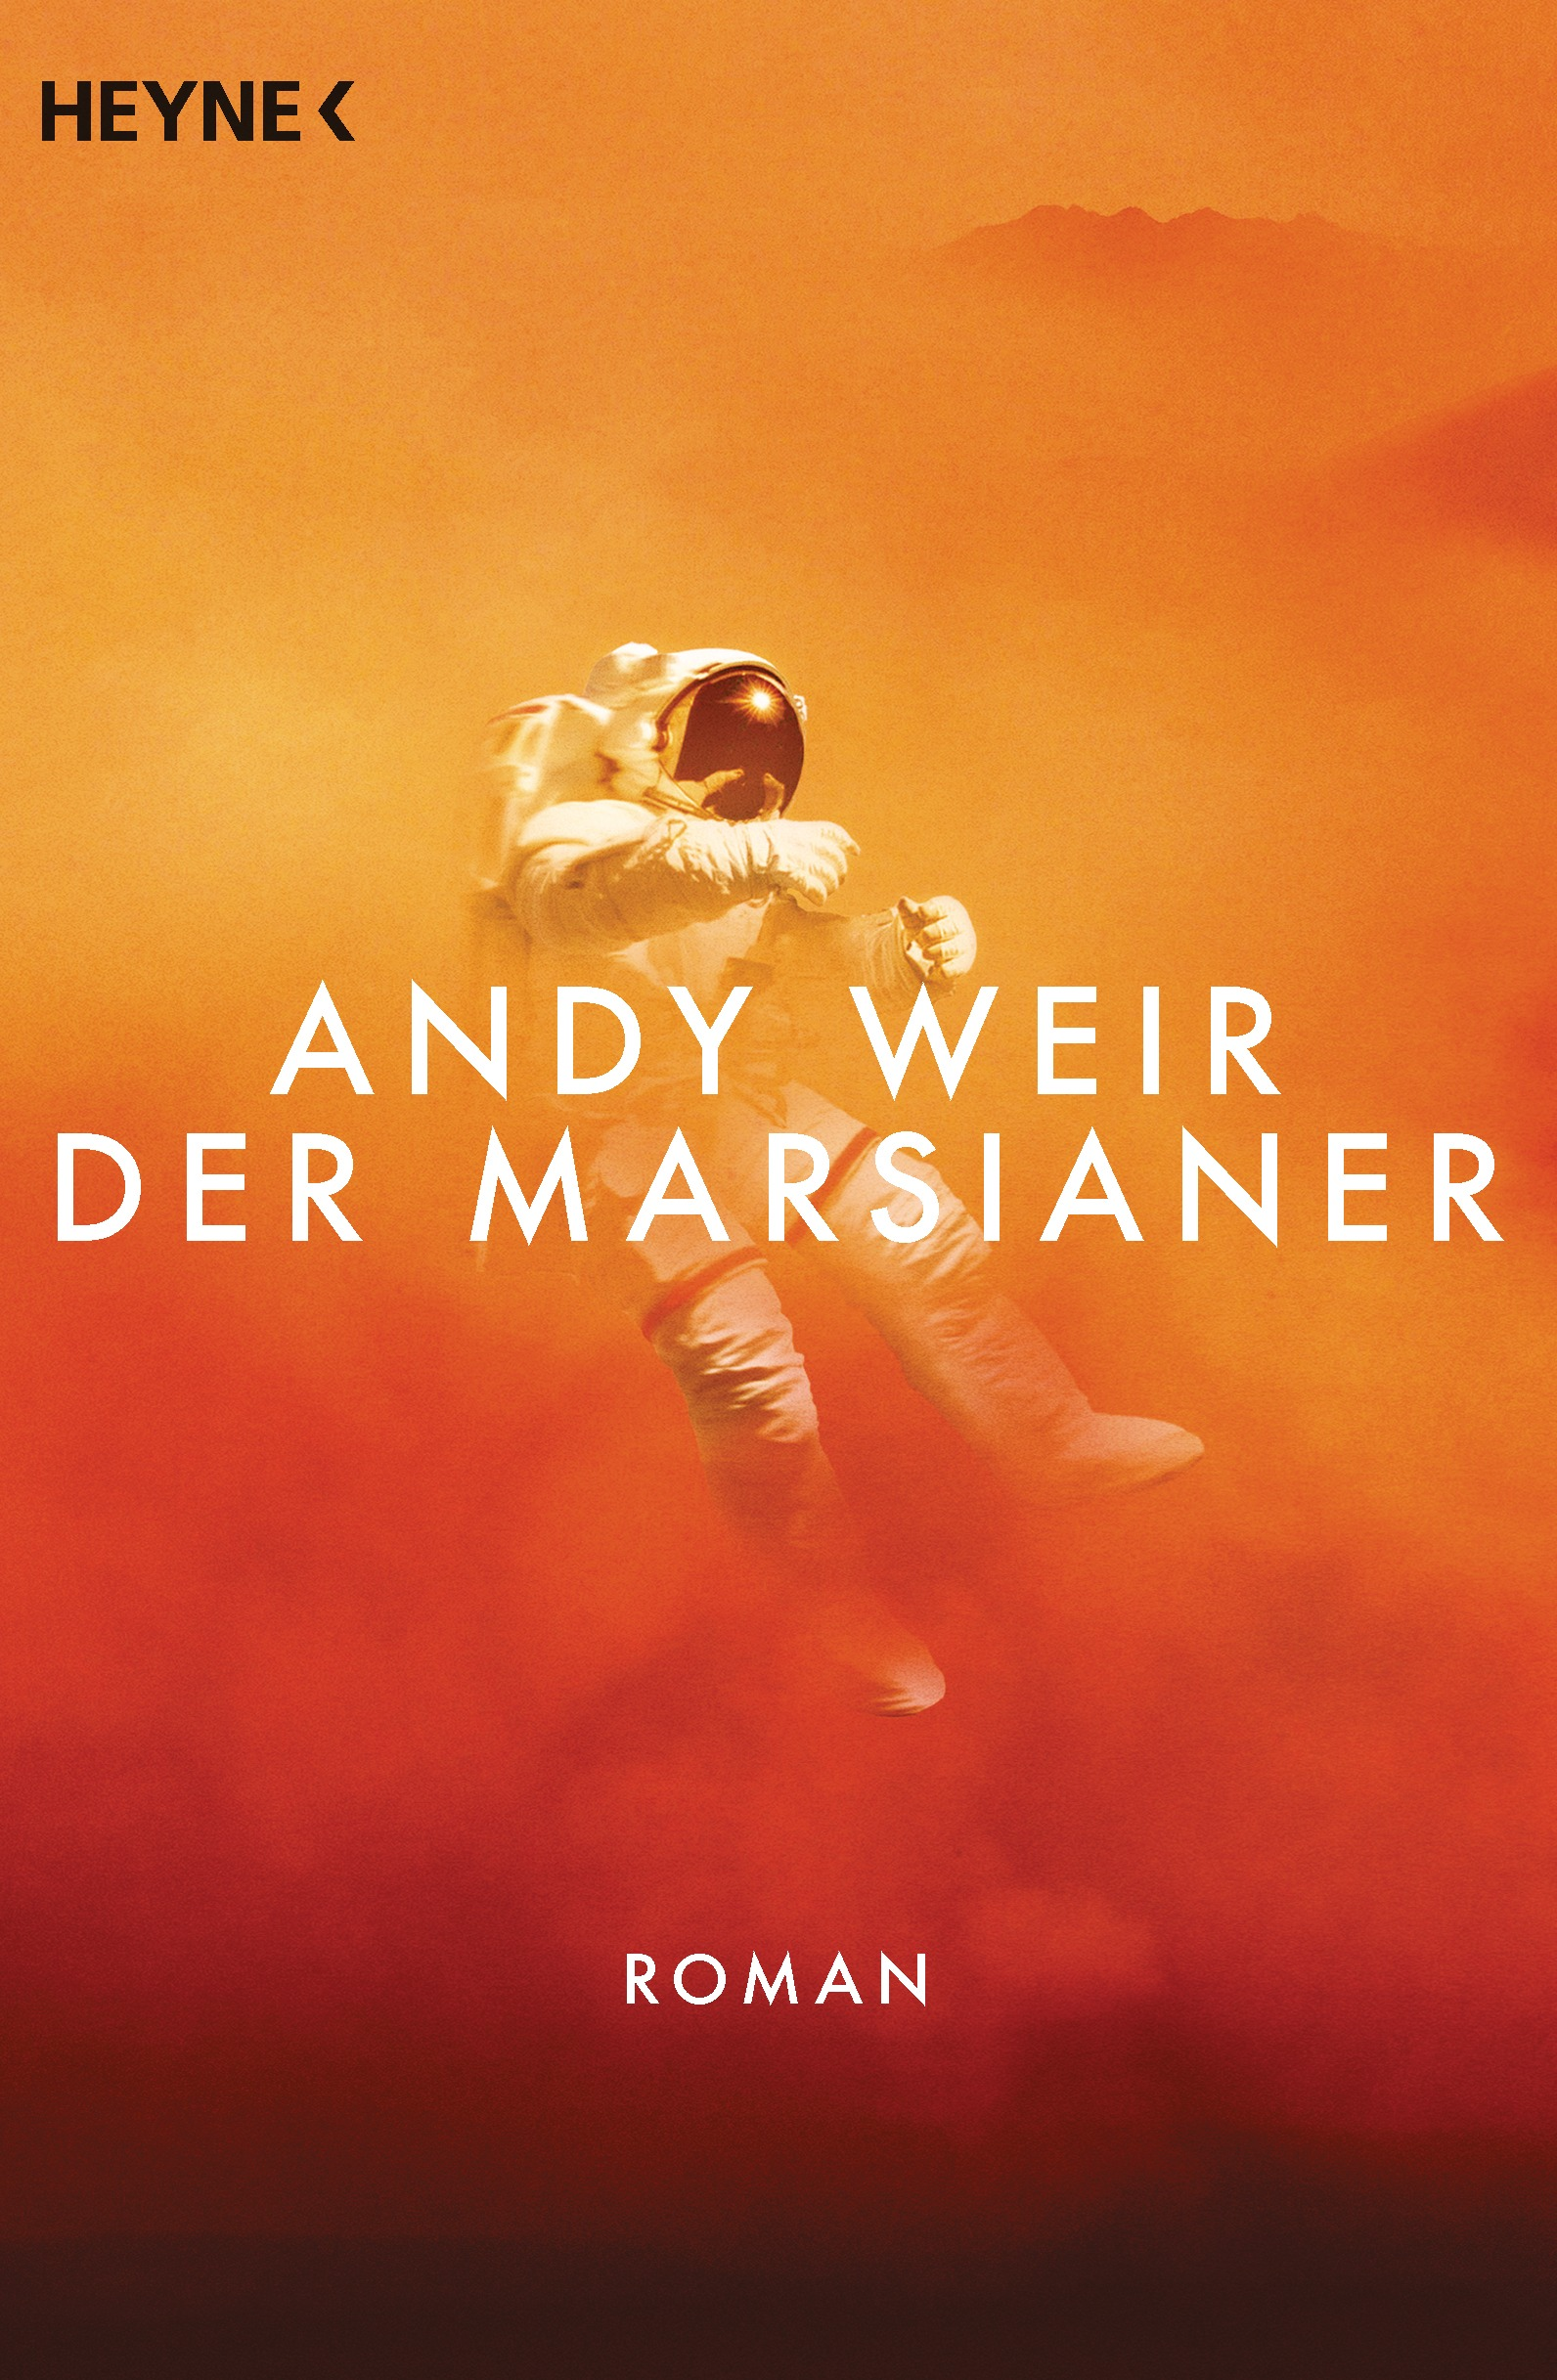 Der Marsianer - Andy Weir [Broschiert]